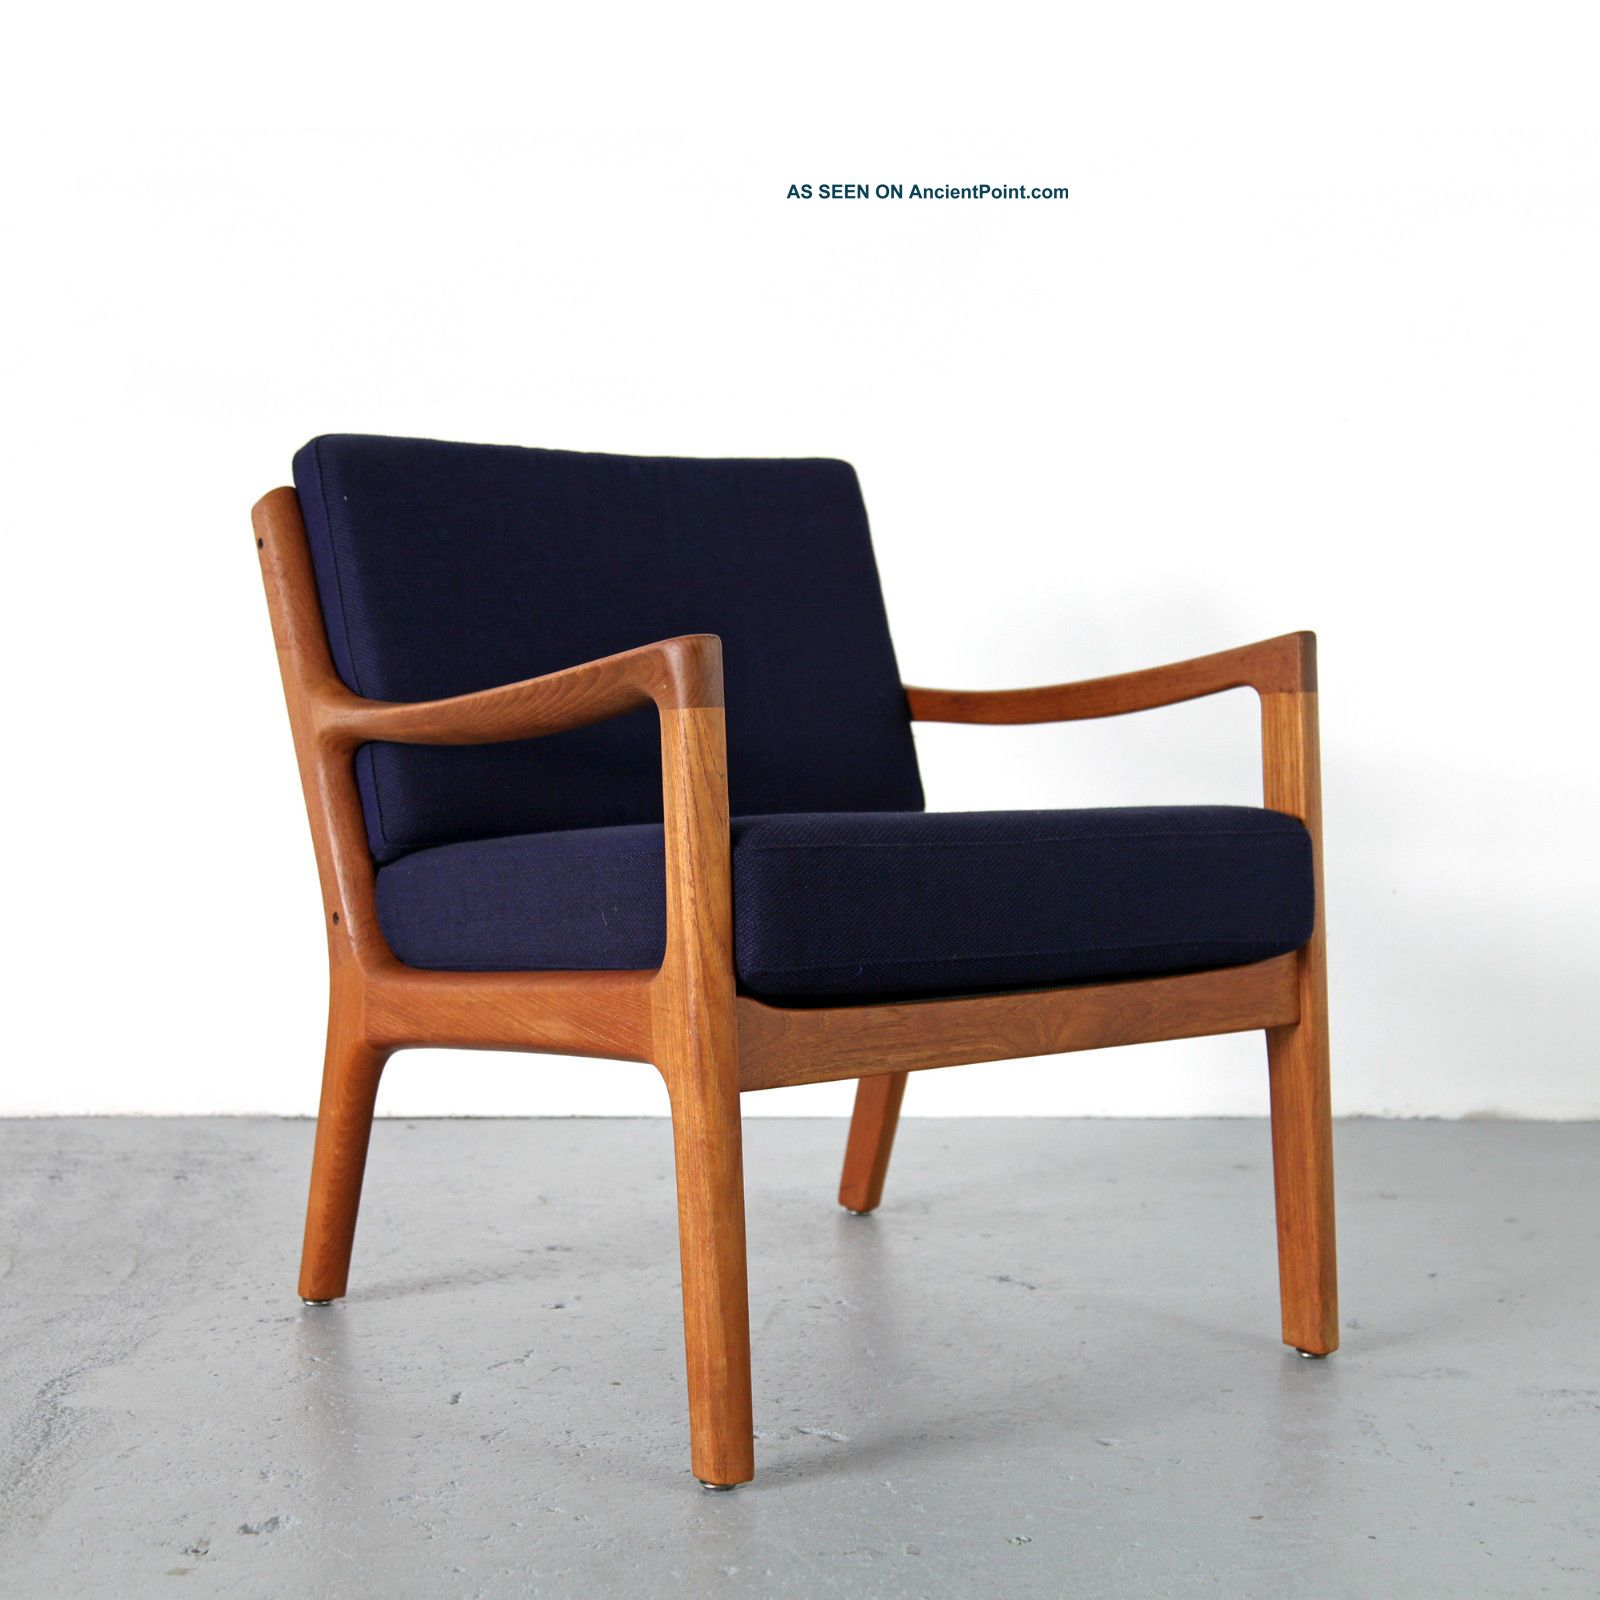 Modern Sessel Modern Easy Chair By Ole Wanscher For Cado Denmark 60s Danish